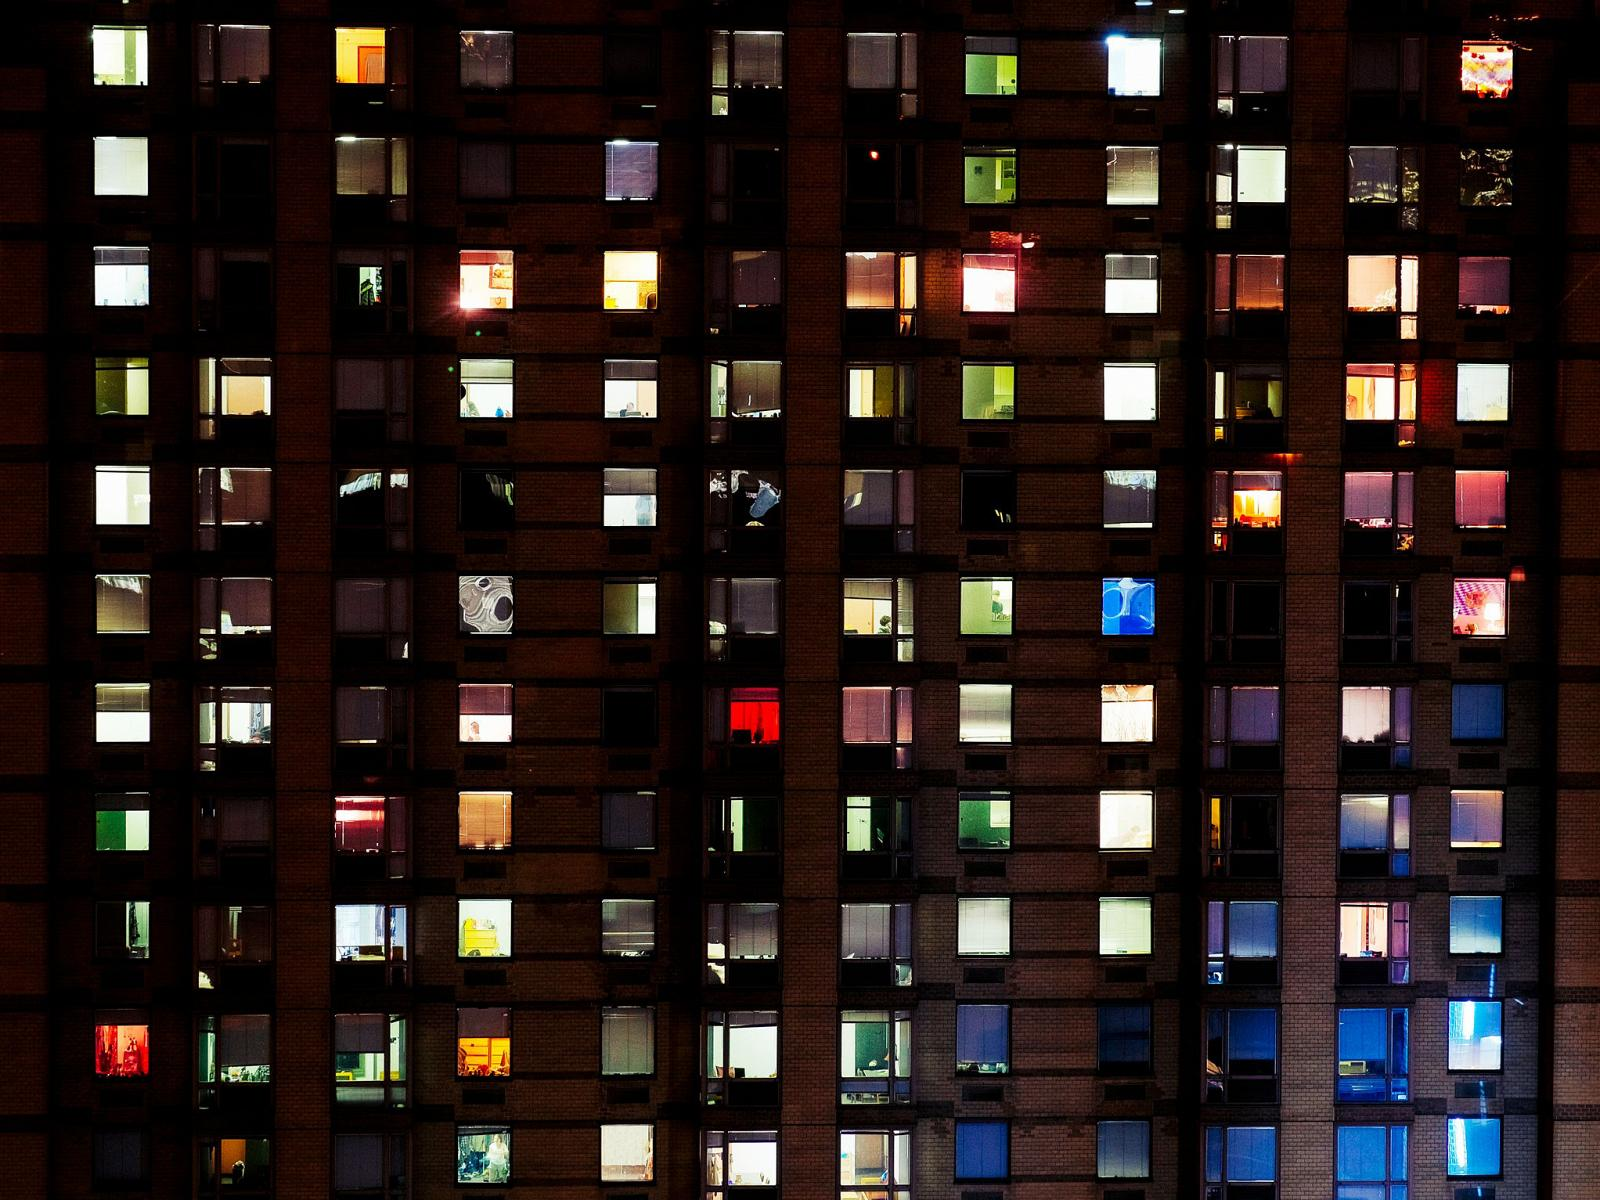 grid of backlit windows in large building